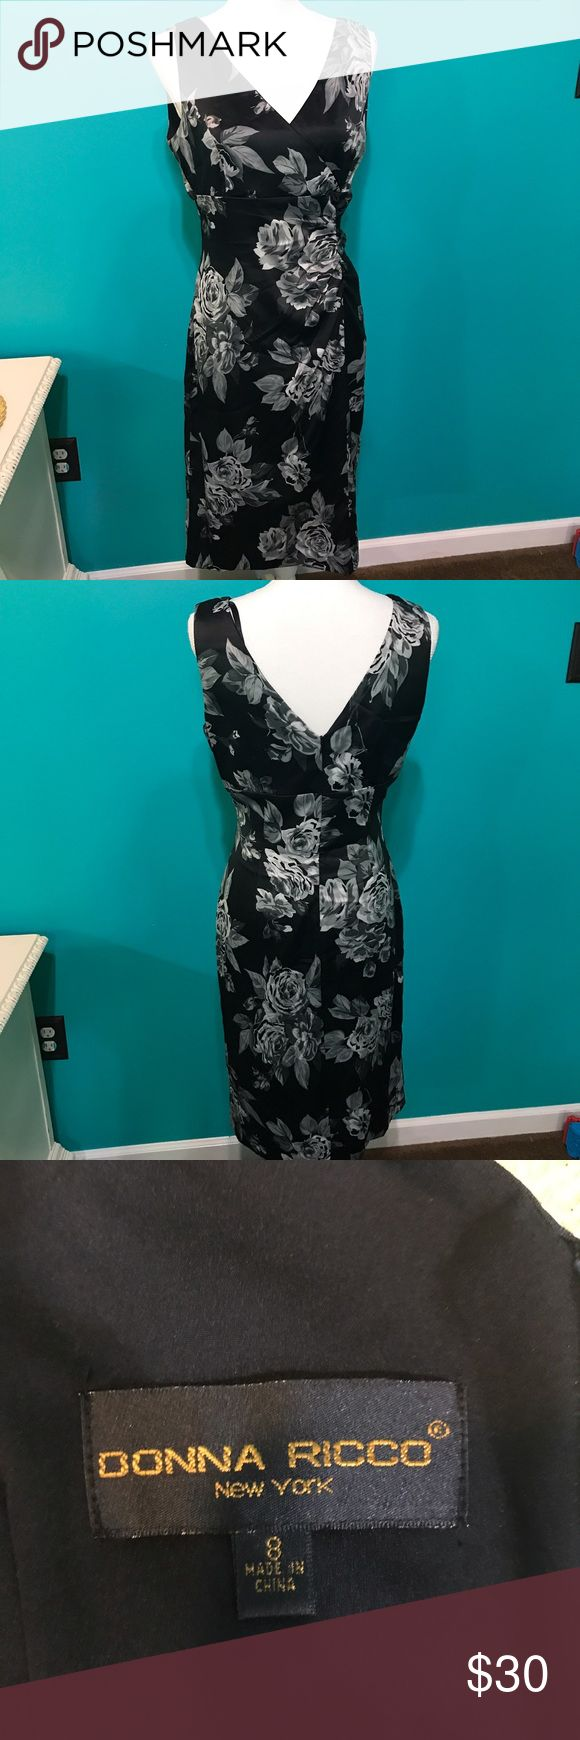 Donna Ricco floral dress Beautiful satin feel floral tea length dress. I can't quite capture it beauty in pictures! This is one you have to see in person! Donna Ricco Dresses Midi